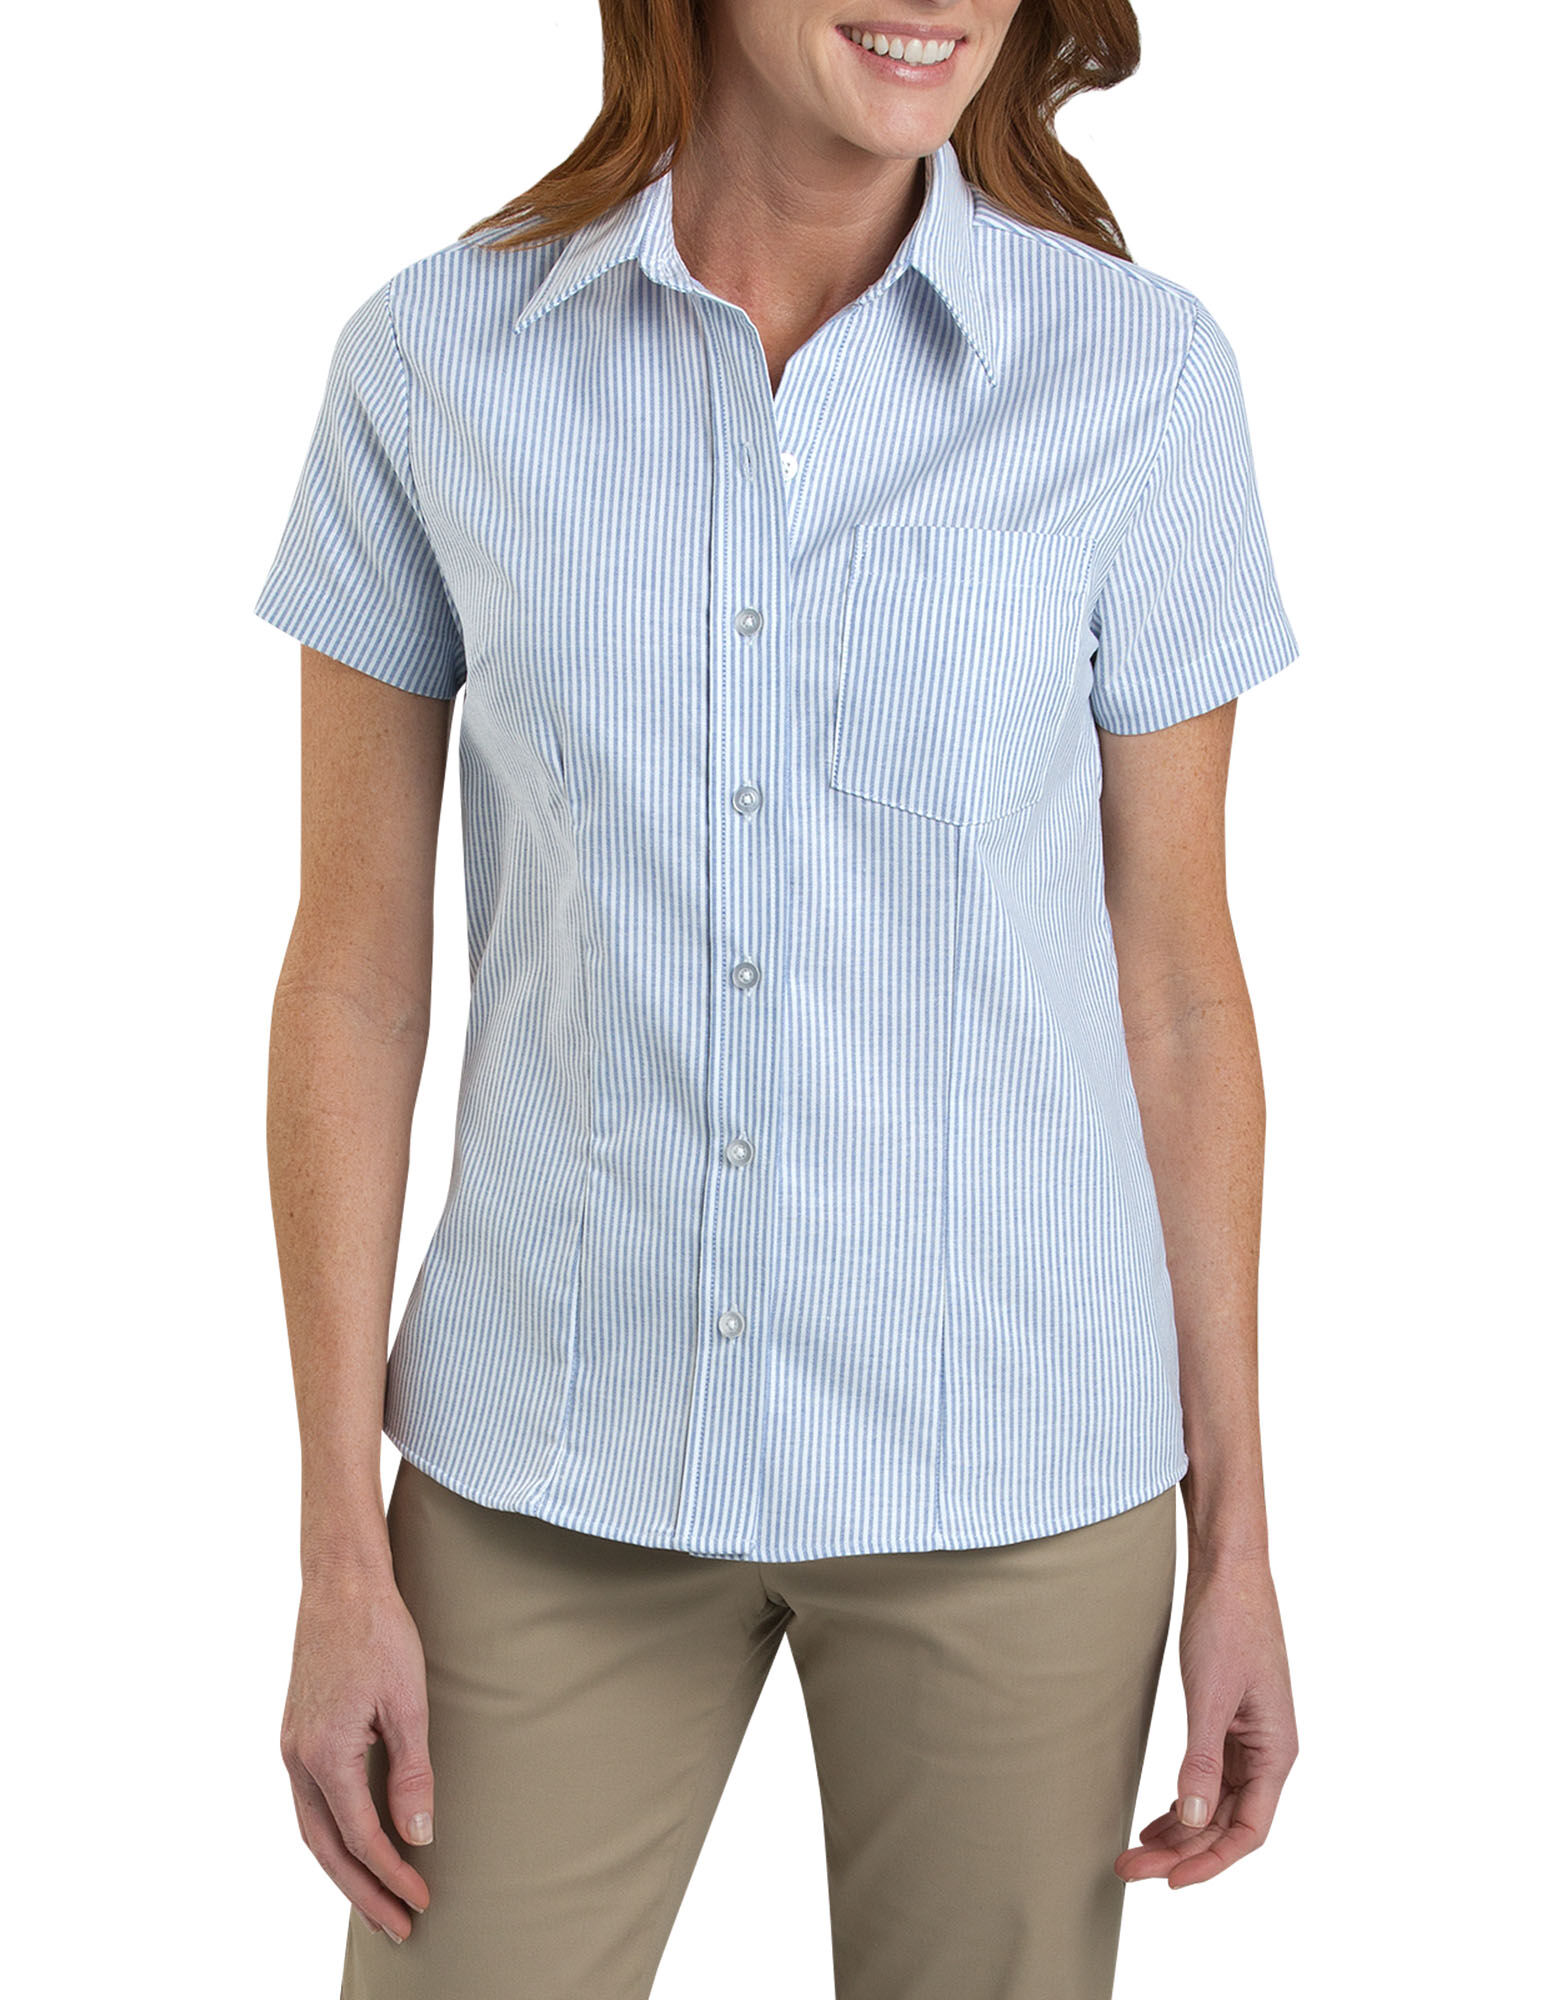 Lark & Ro Women's Pintucked Short Sleeve Collar Top. $ - $ $ 27 $ 35 00 Prime. 4 out of 5 stars 9. Amazon Essentials. Our Brand. Amazon Essentials Women's 2-Pack Short-Sleeve Crewneck Solid T-Shirt. $ $ 16 00 Prime. out of 5 stars Amazon Essentials.